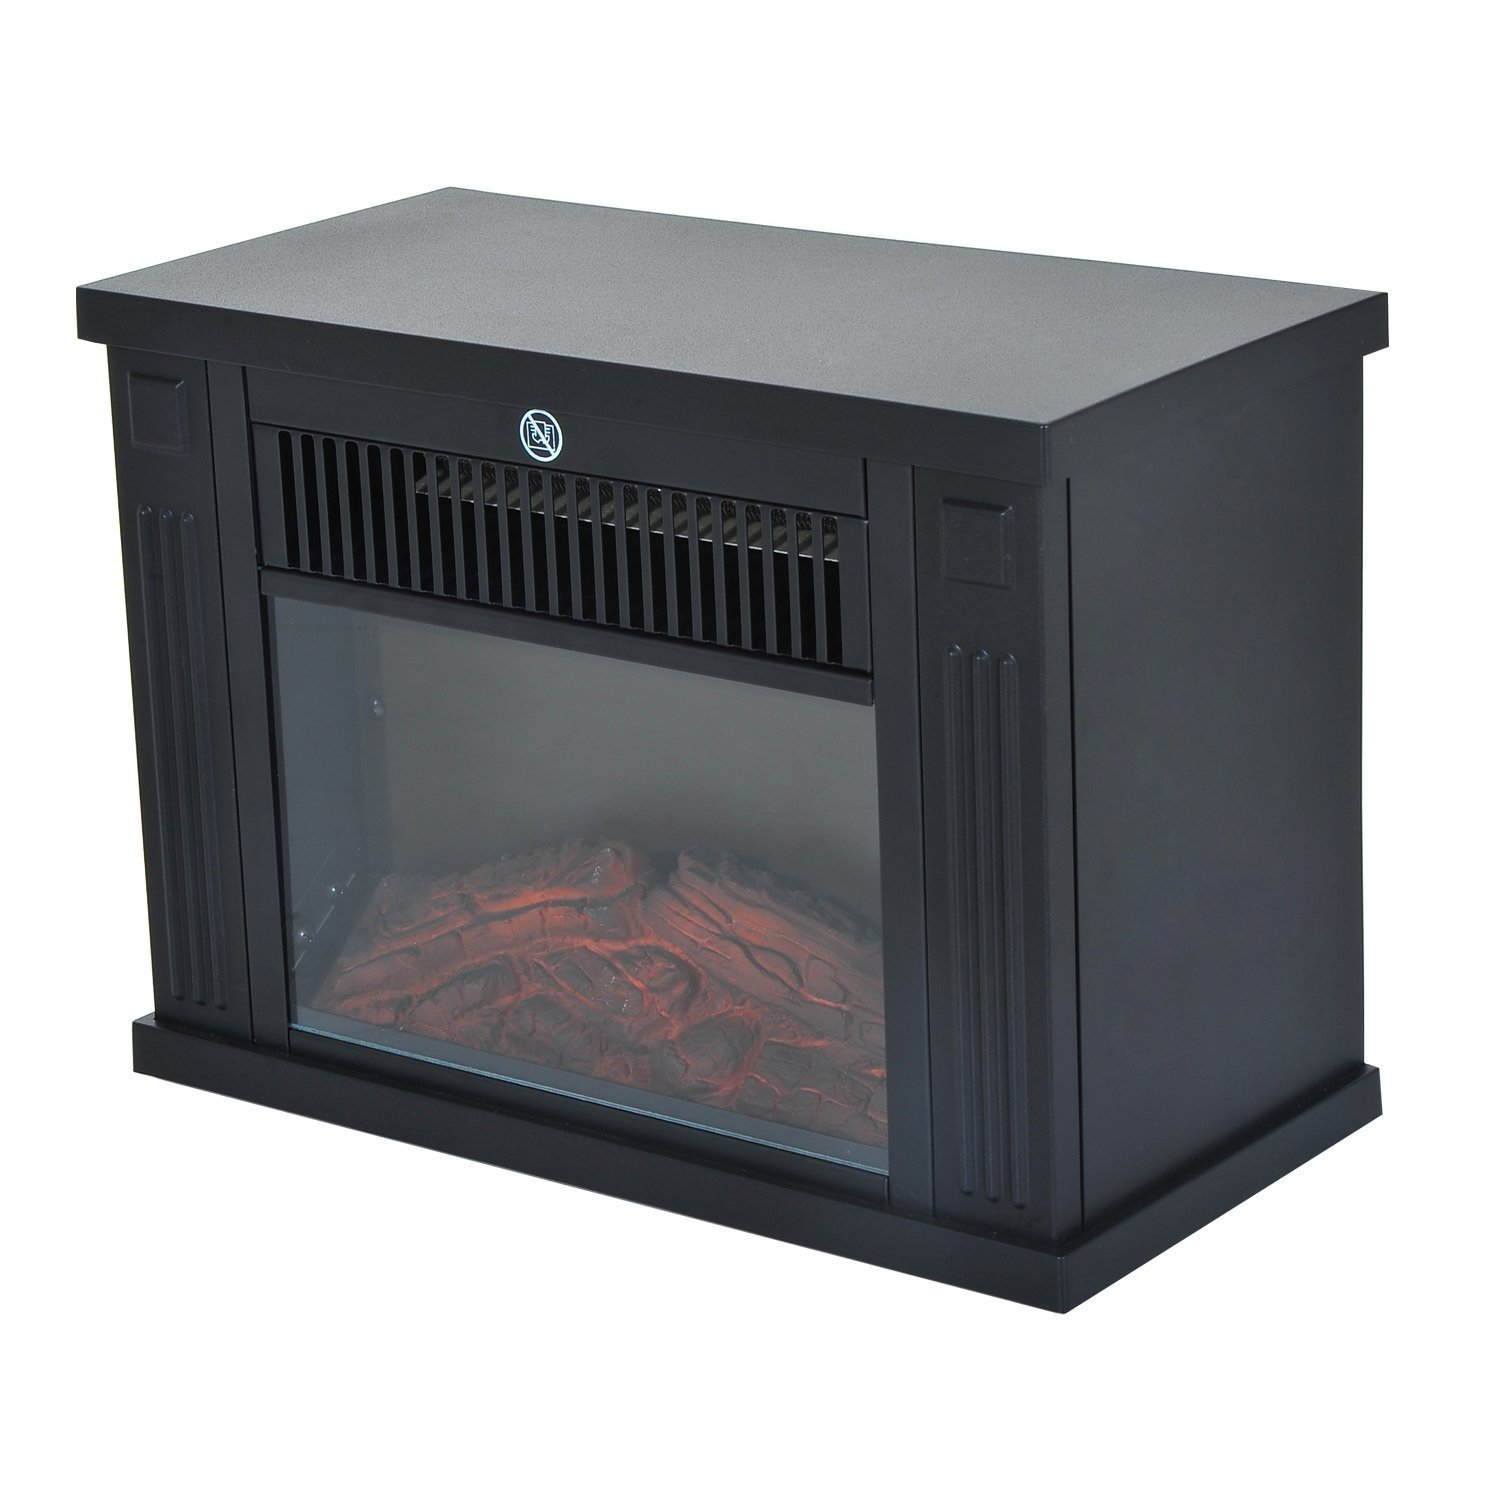 HOMCOM Electric Fireplace Tempered Power 600 W/1200 W Plastic And Glass Floor 34 × 17 × 25 Cm Black